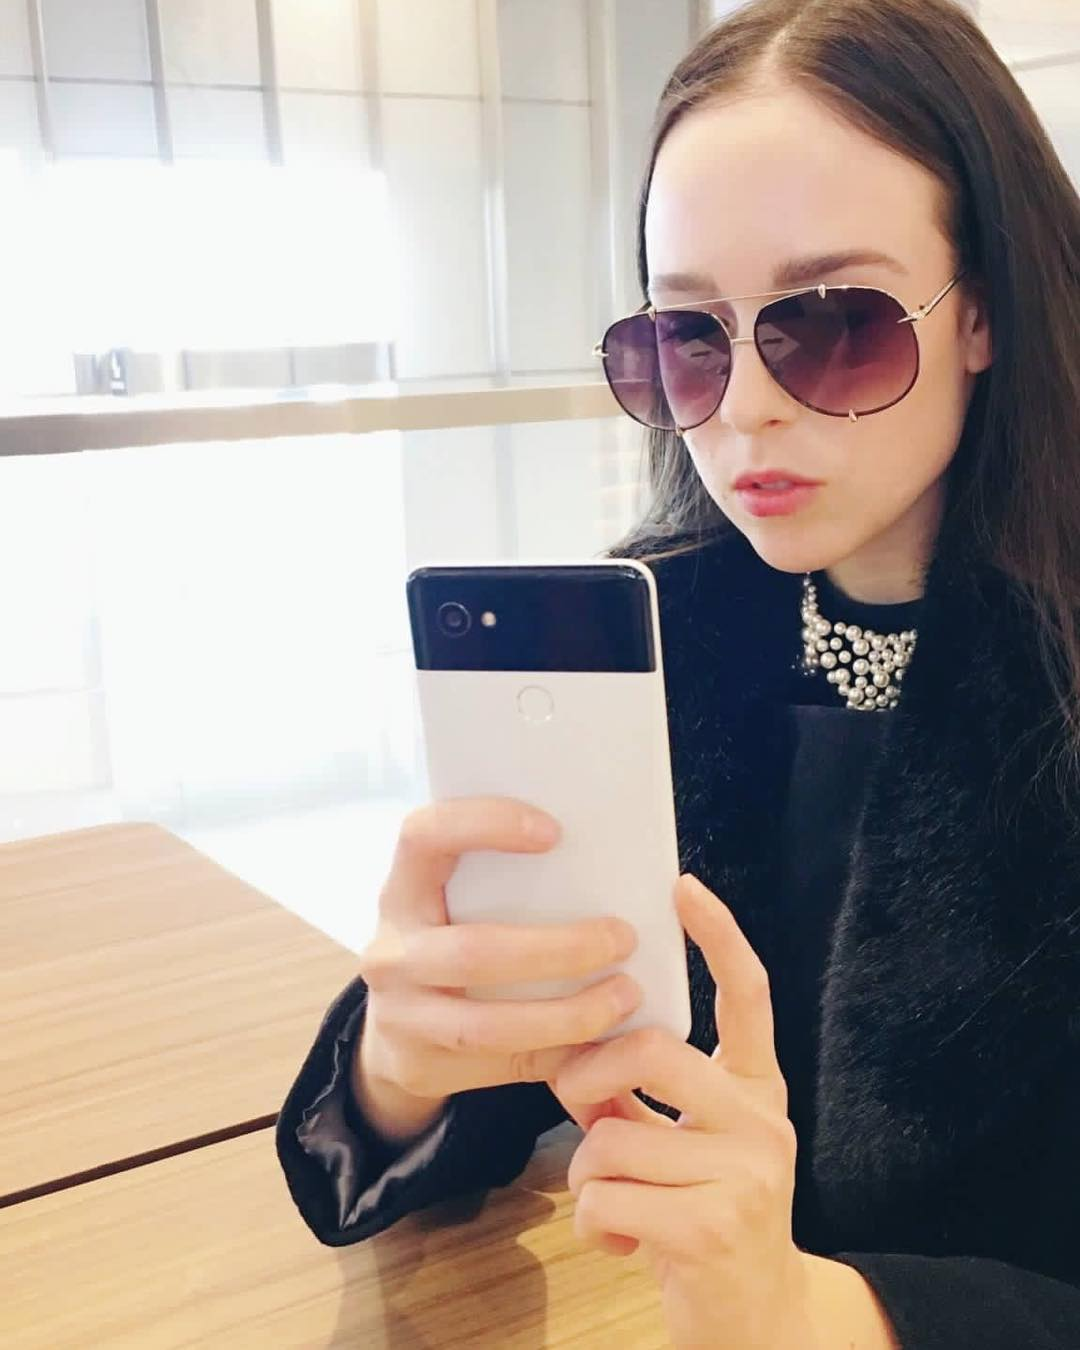 Allie X net worth